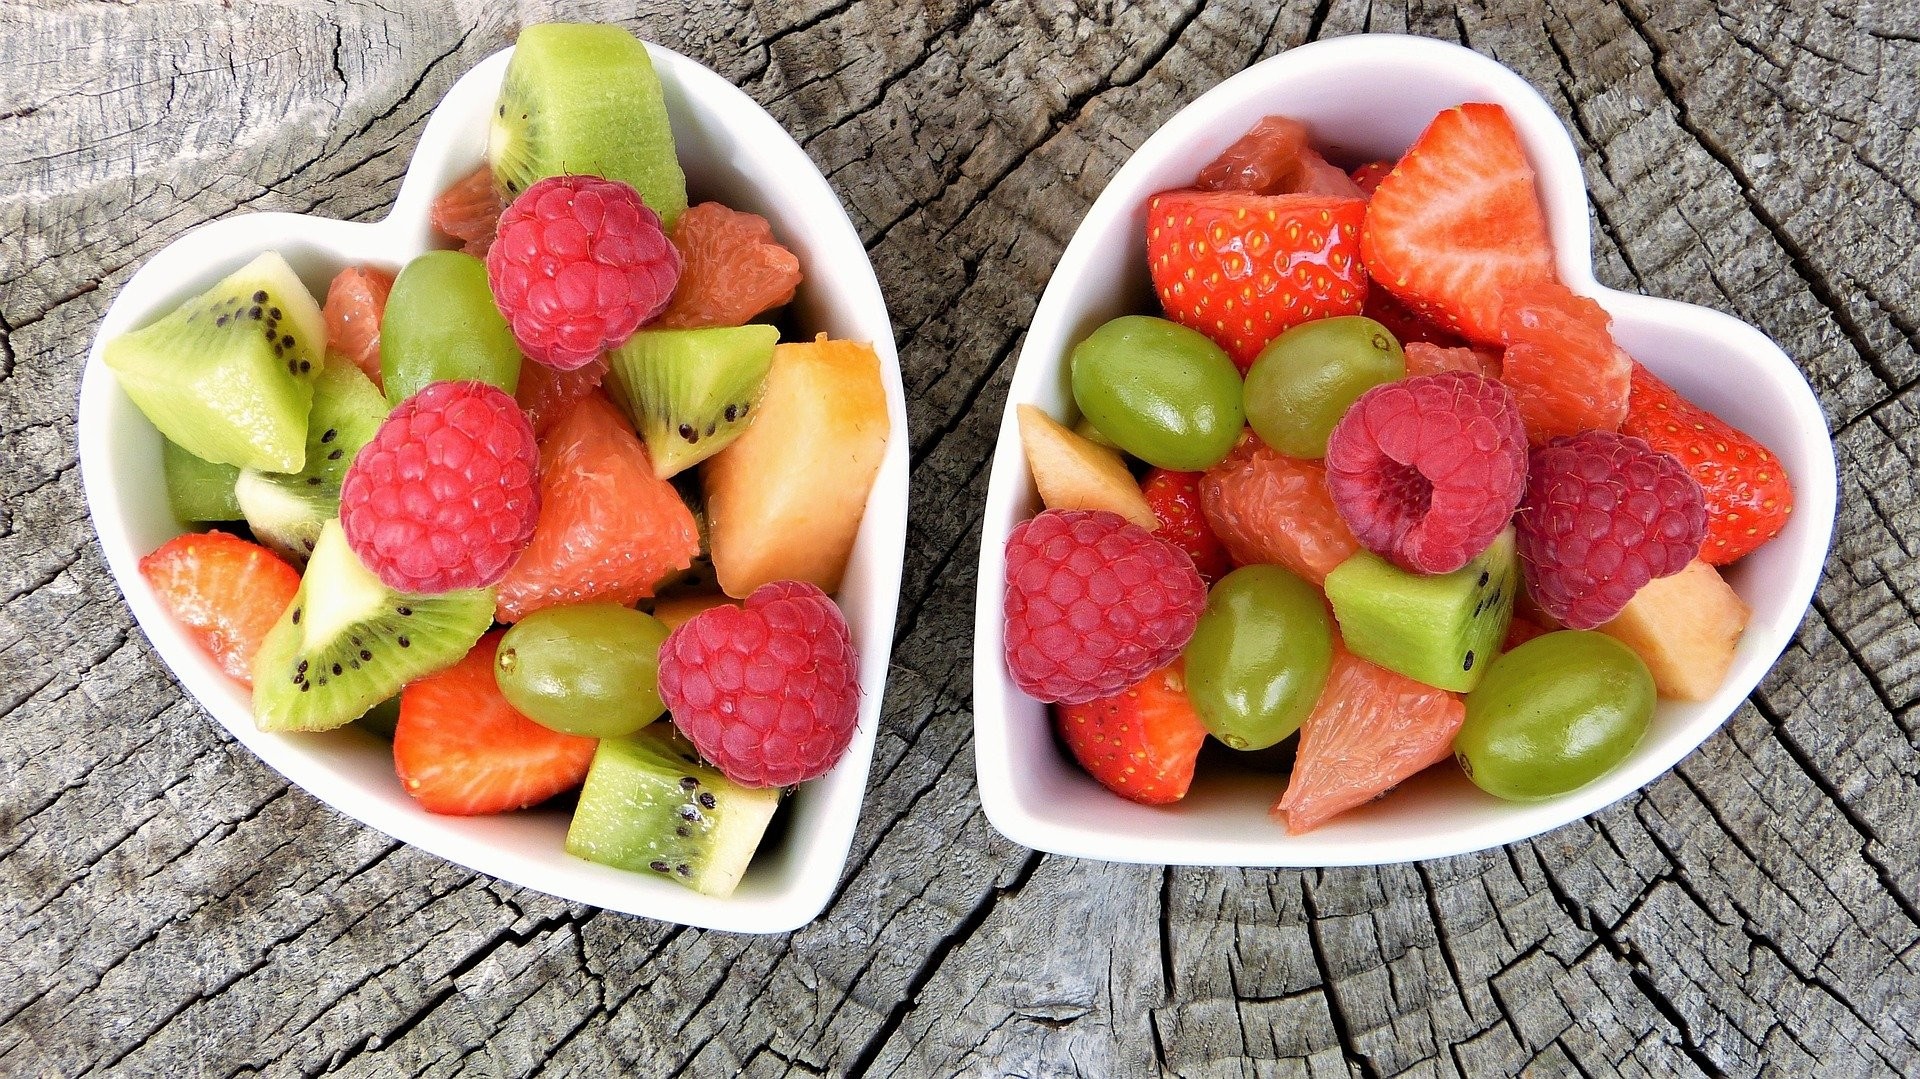 Two heart-shaped bowls with mixed fruits.